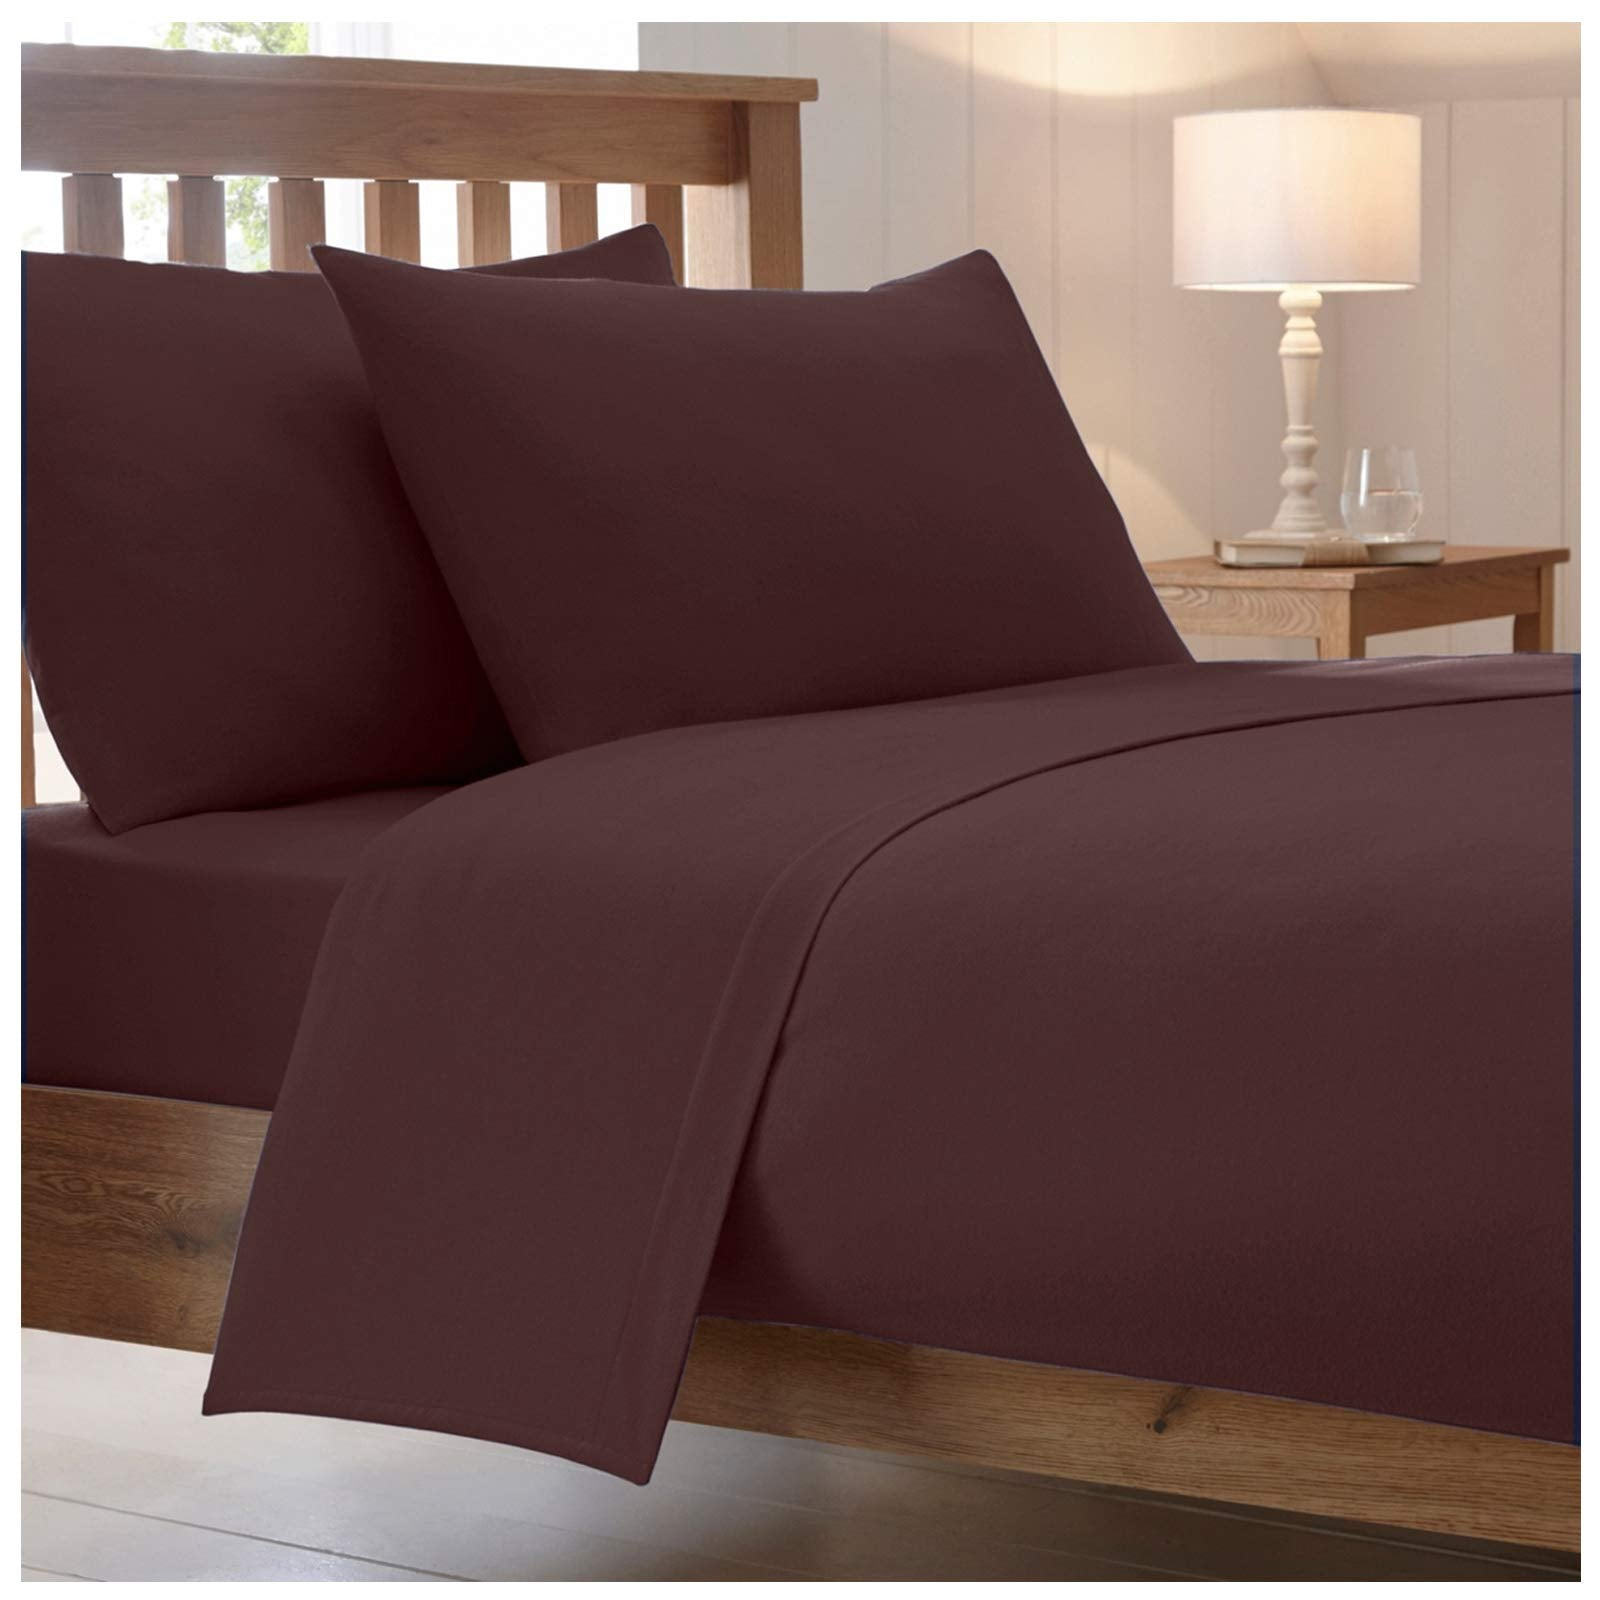 Catherine Lansfield, Combed Percale Non-Iron Sheeting, Chocolate, 3 sizes